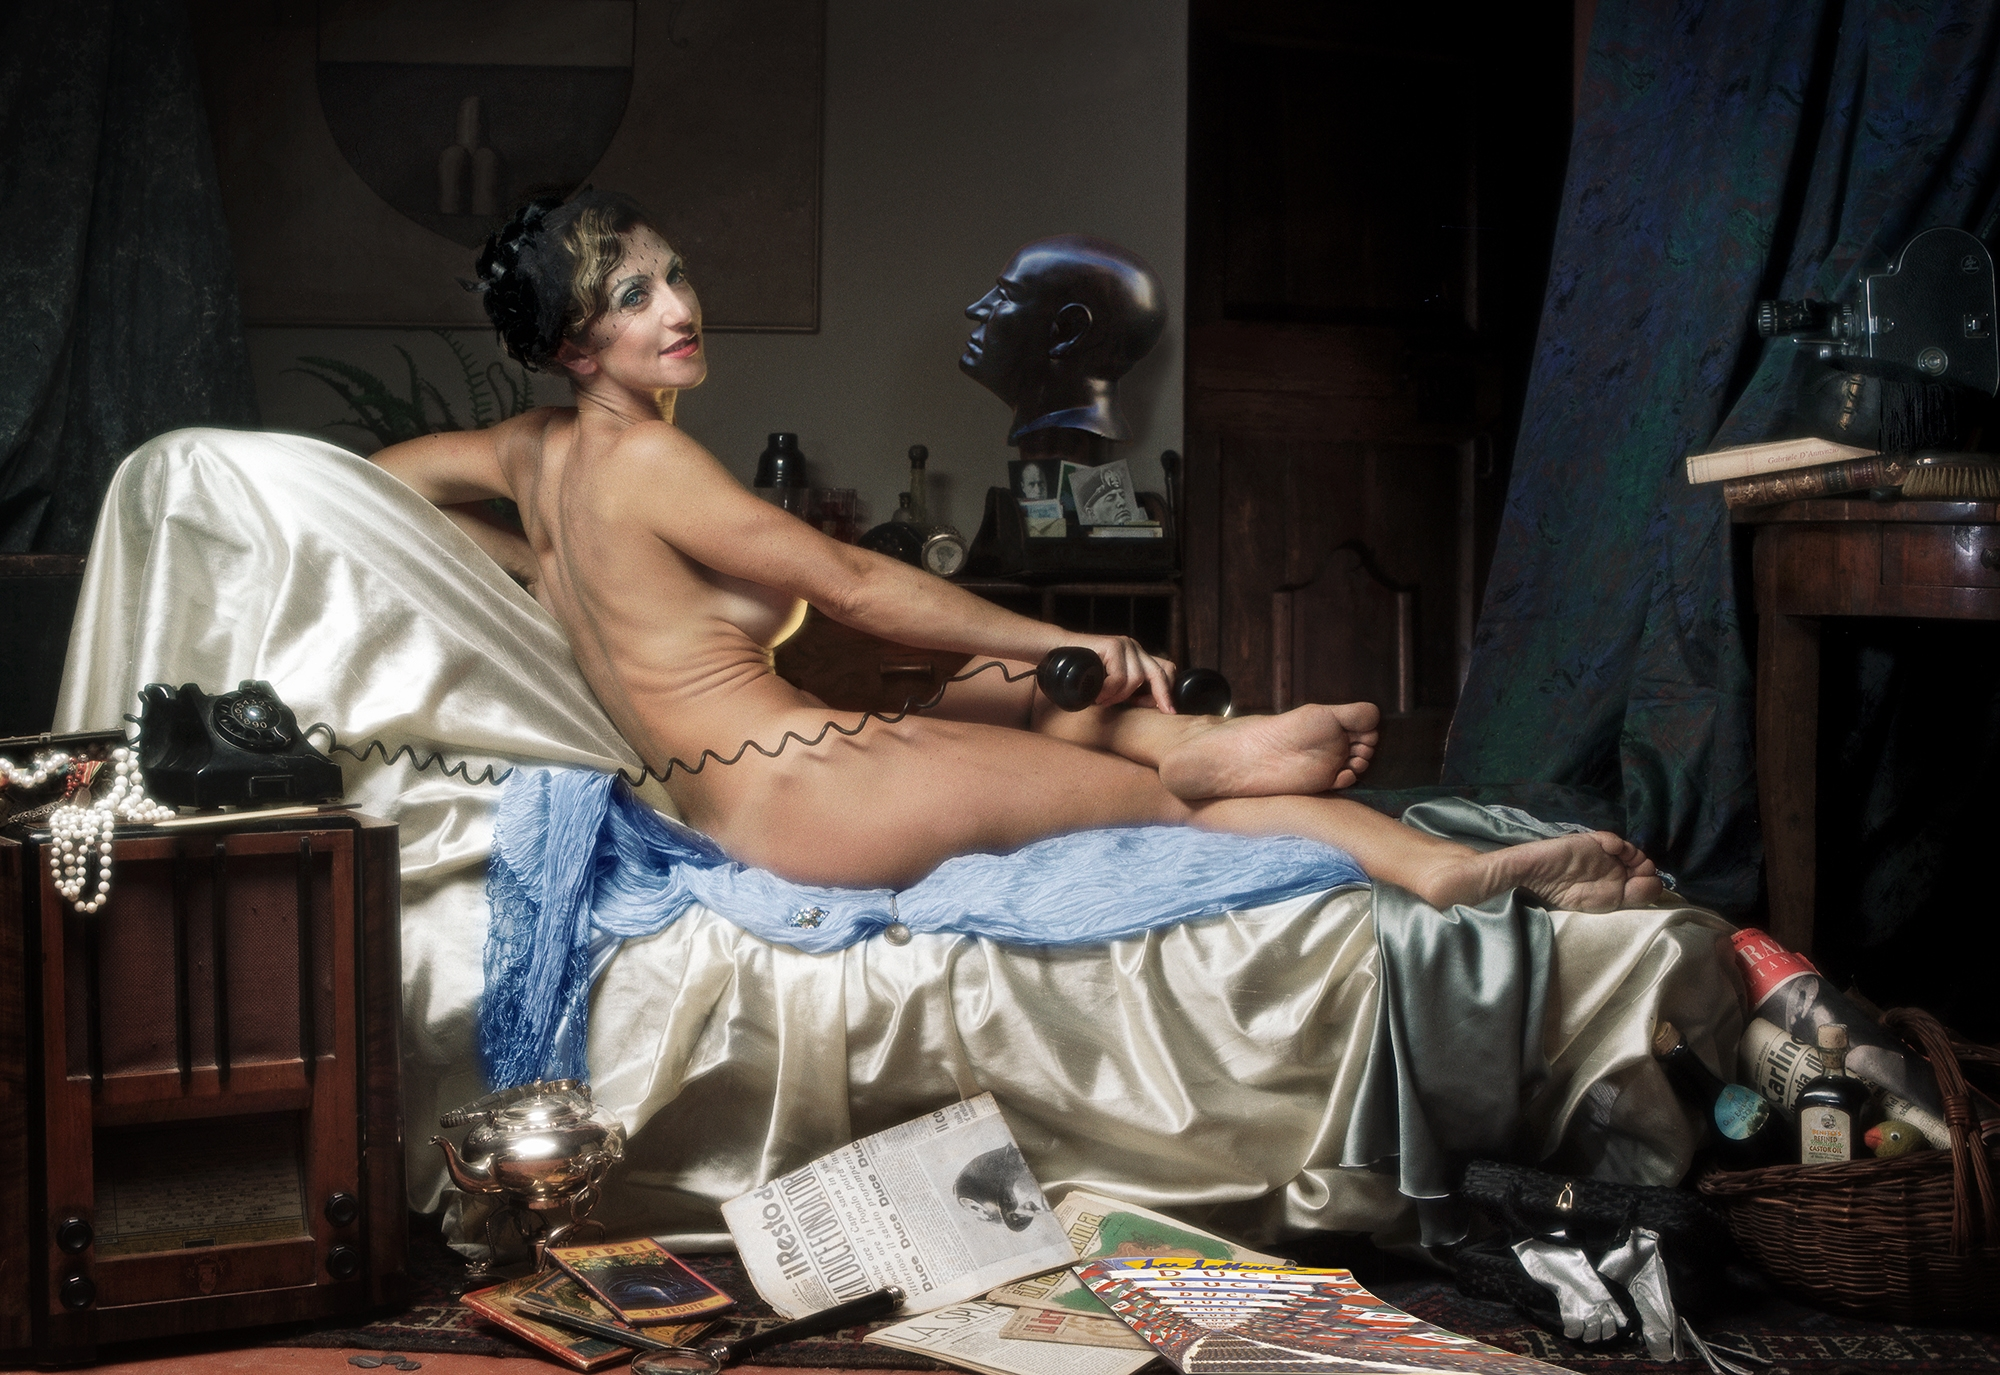 Fascisca 2019 based on Ingres Grande Odalisque